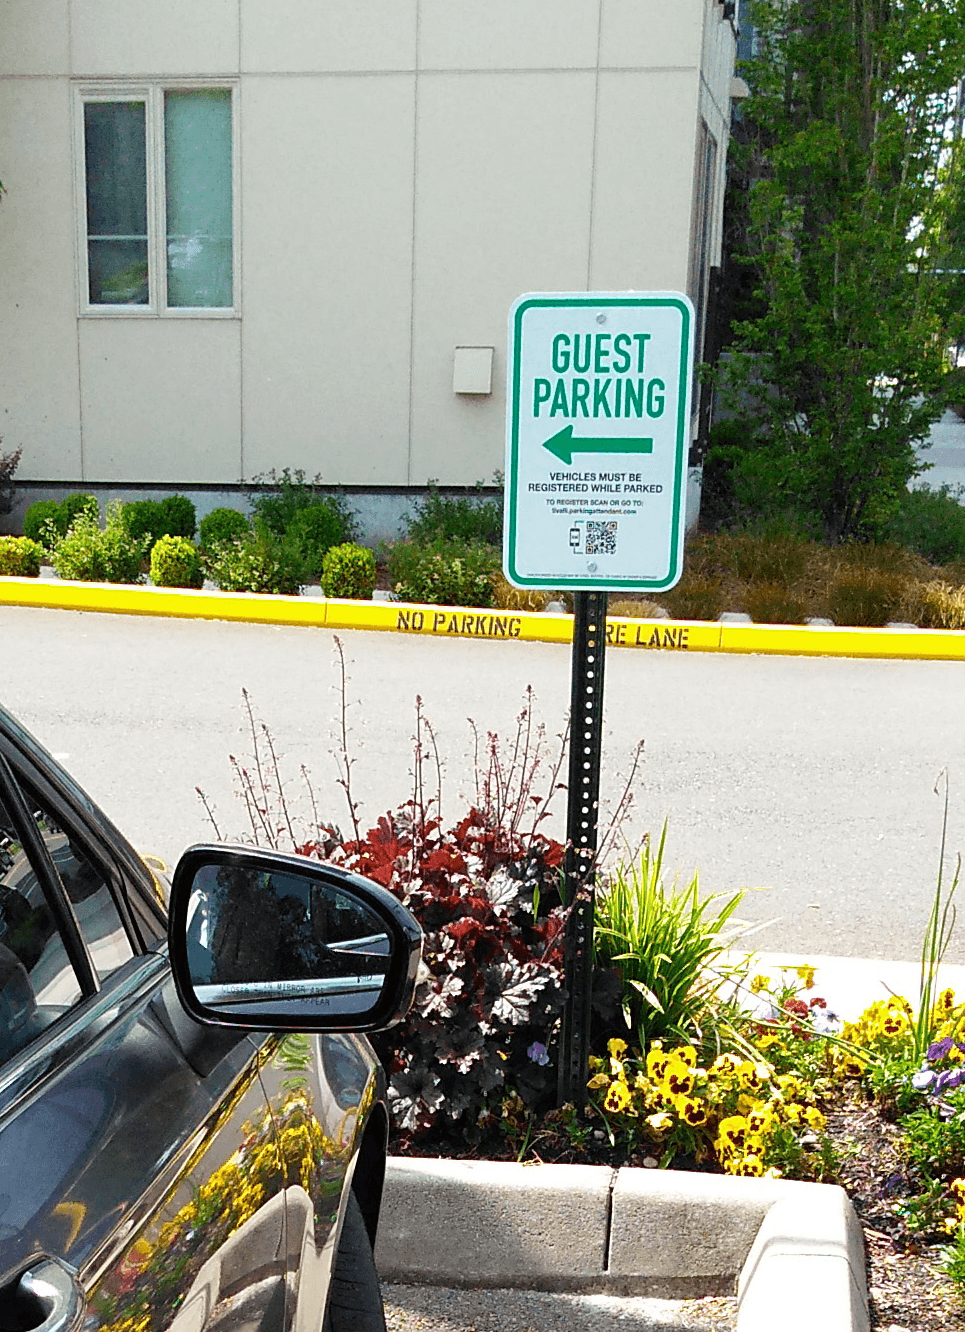 A guest parking sign with a barcode directing gueststo register a digital parking permit.